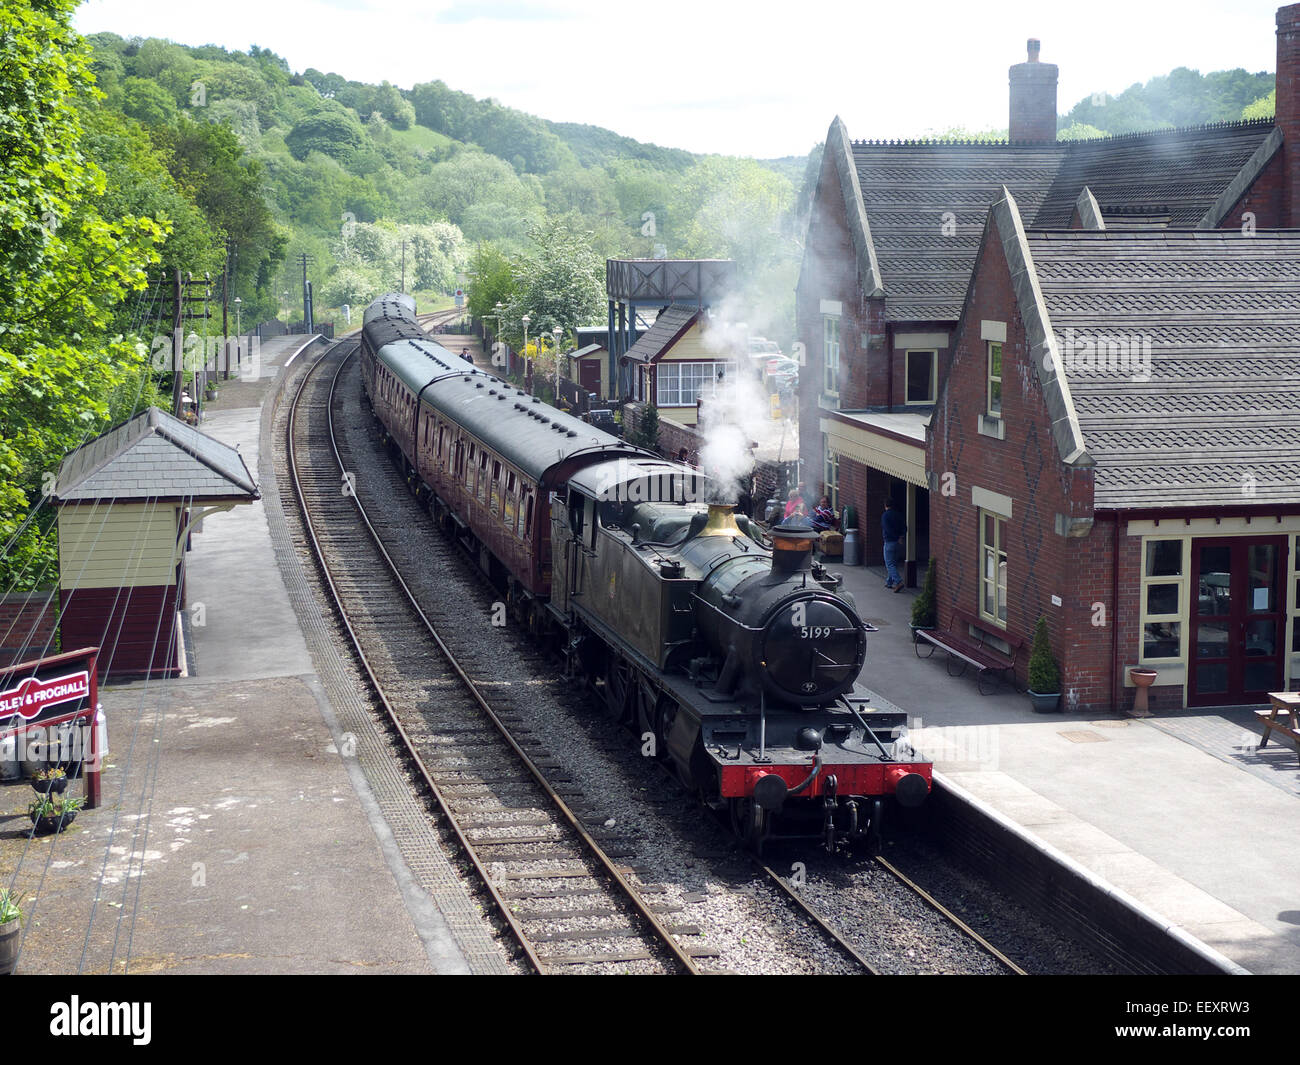 Great Western Railway 5199 tank steam engine at Kingsley & Froghall station, Churnet Valley Railway, Staffordshire, - Stock Image